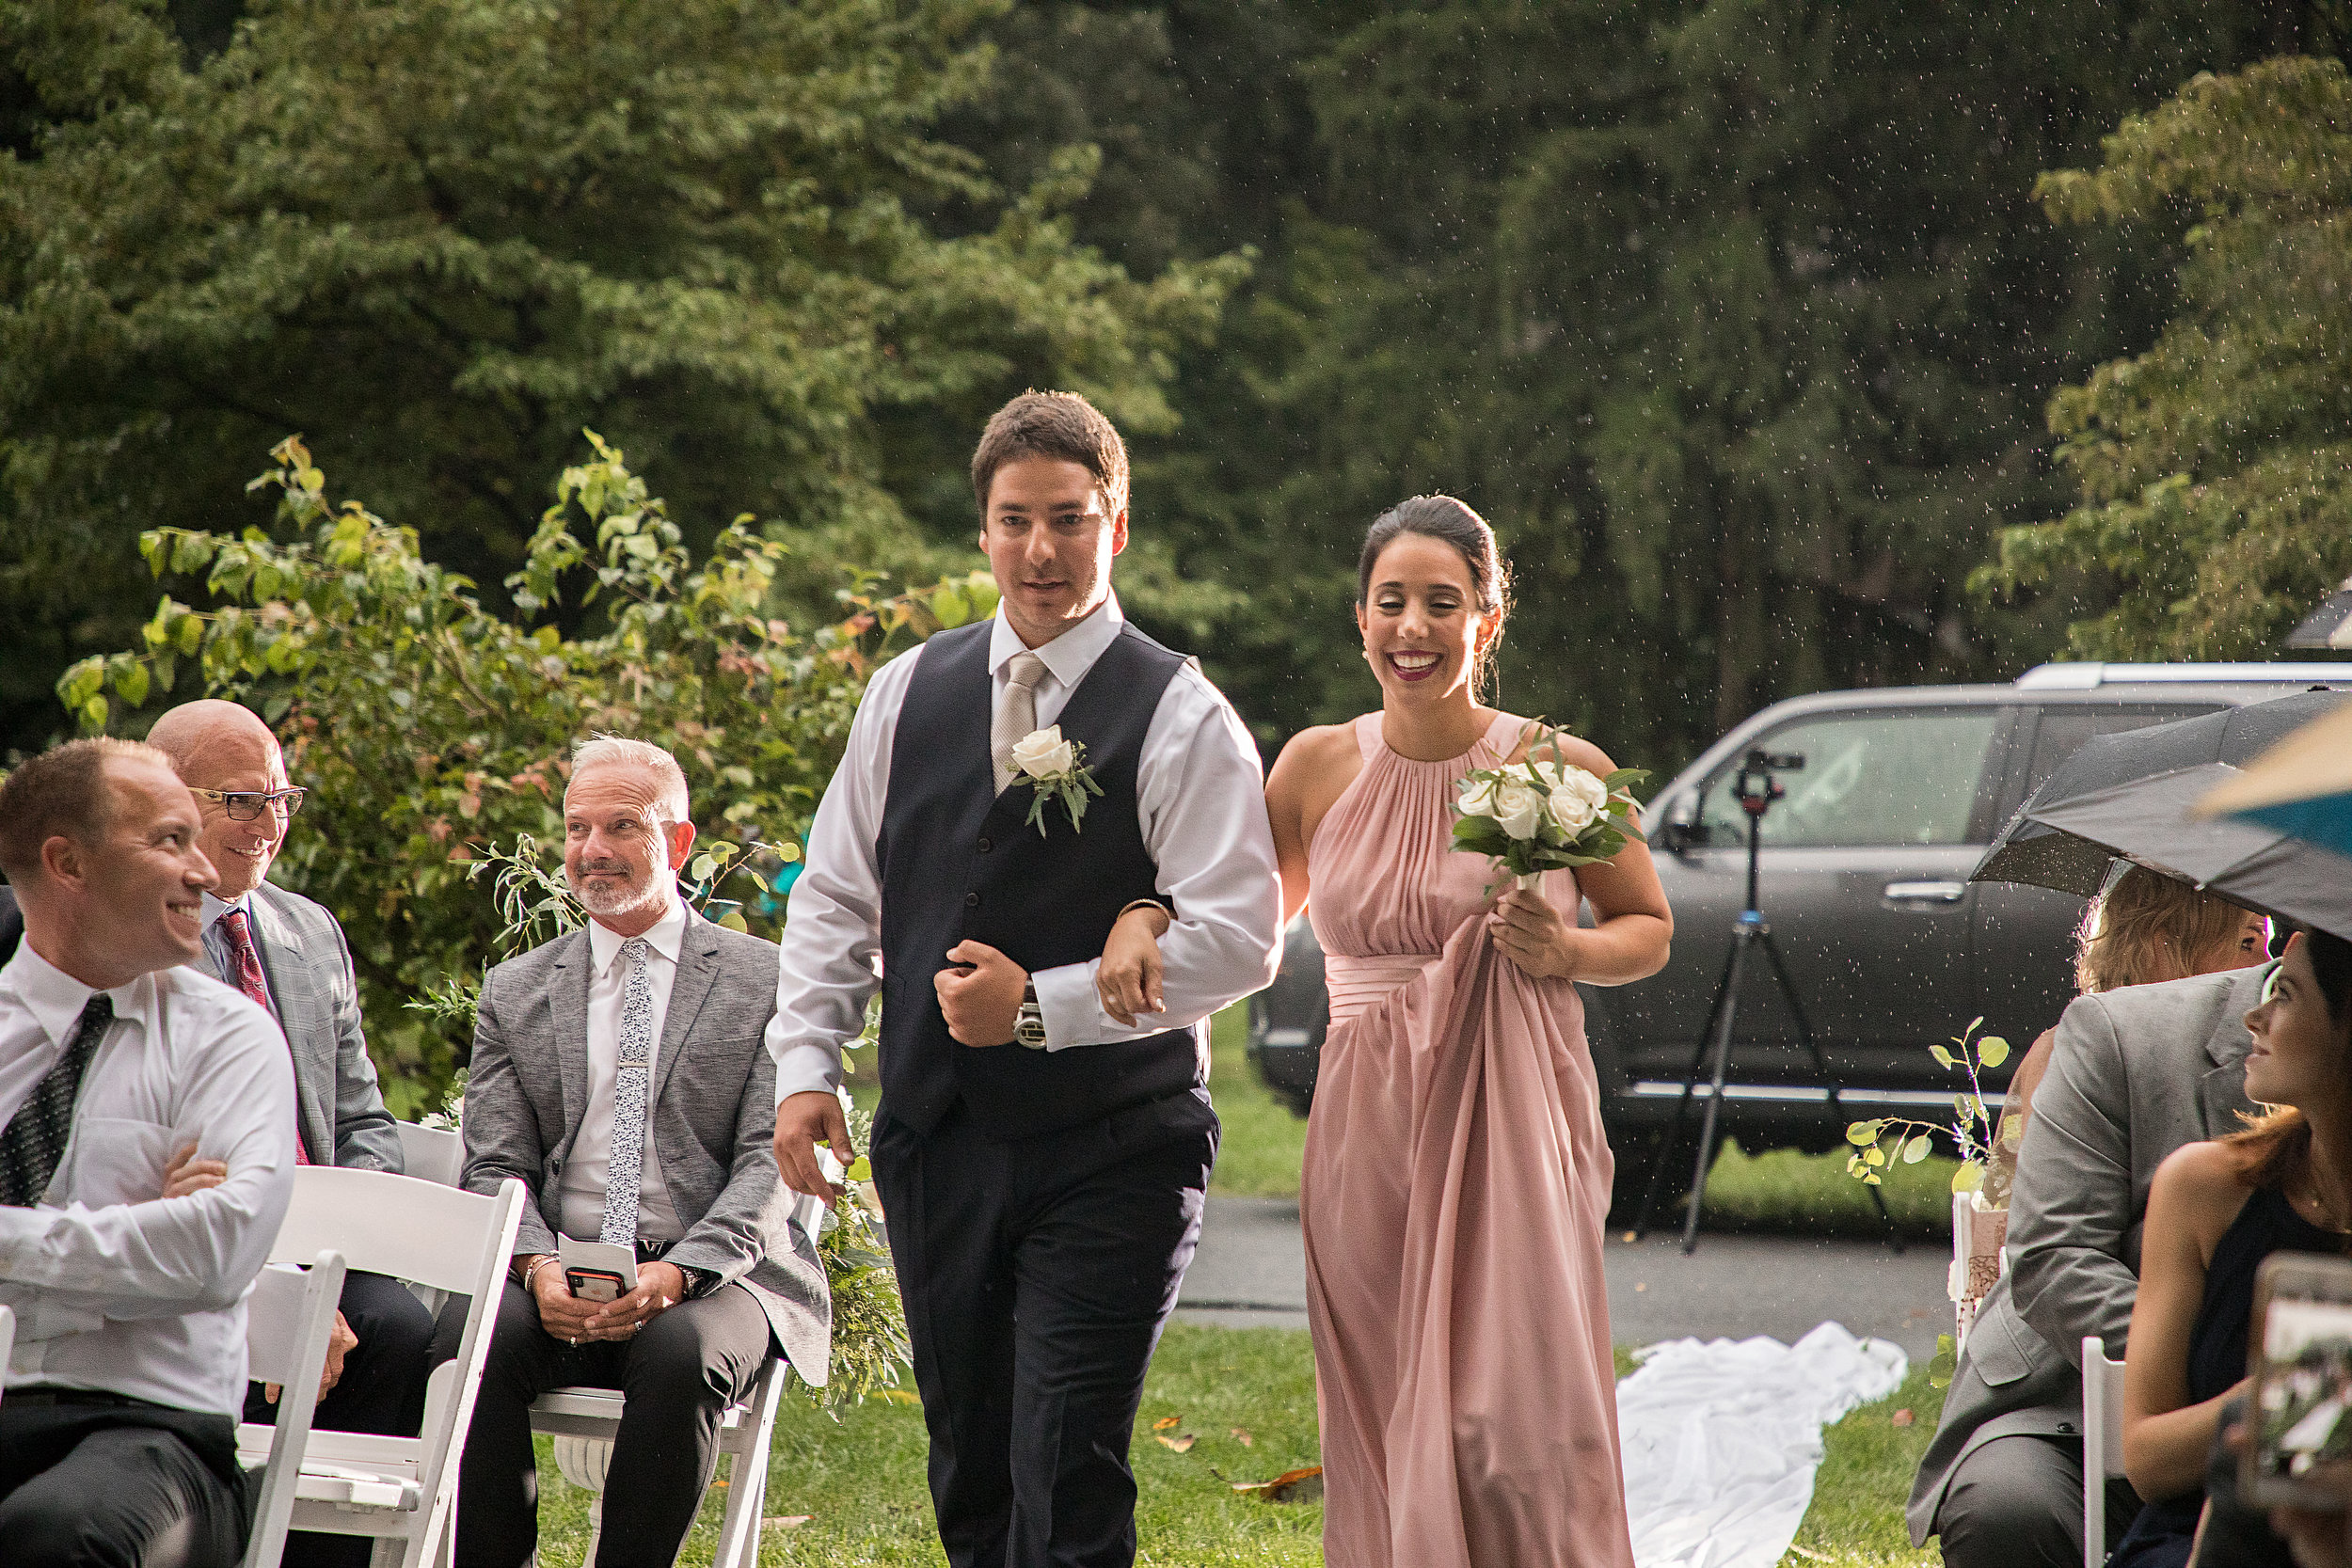 Rain falls as the maid of honor and best man walk down the isle.